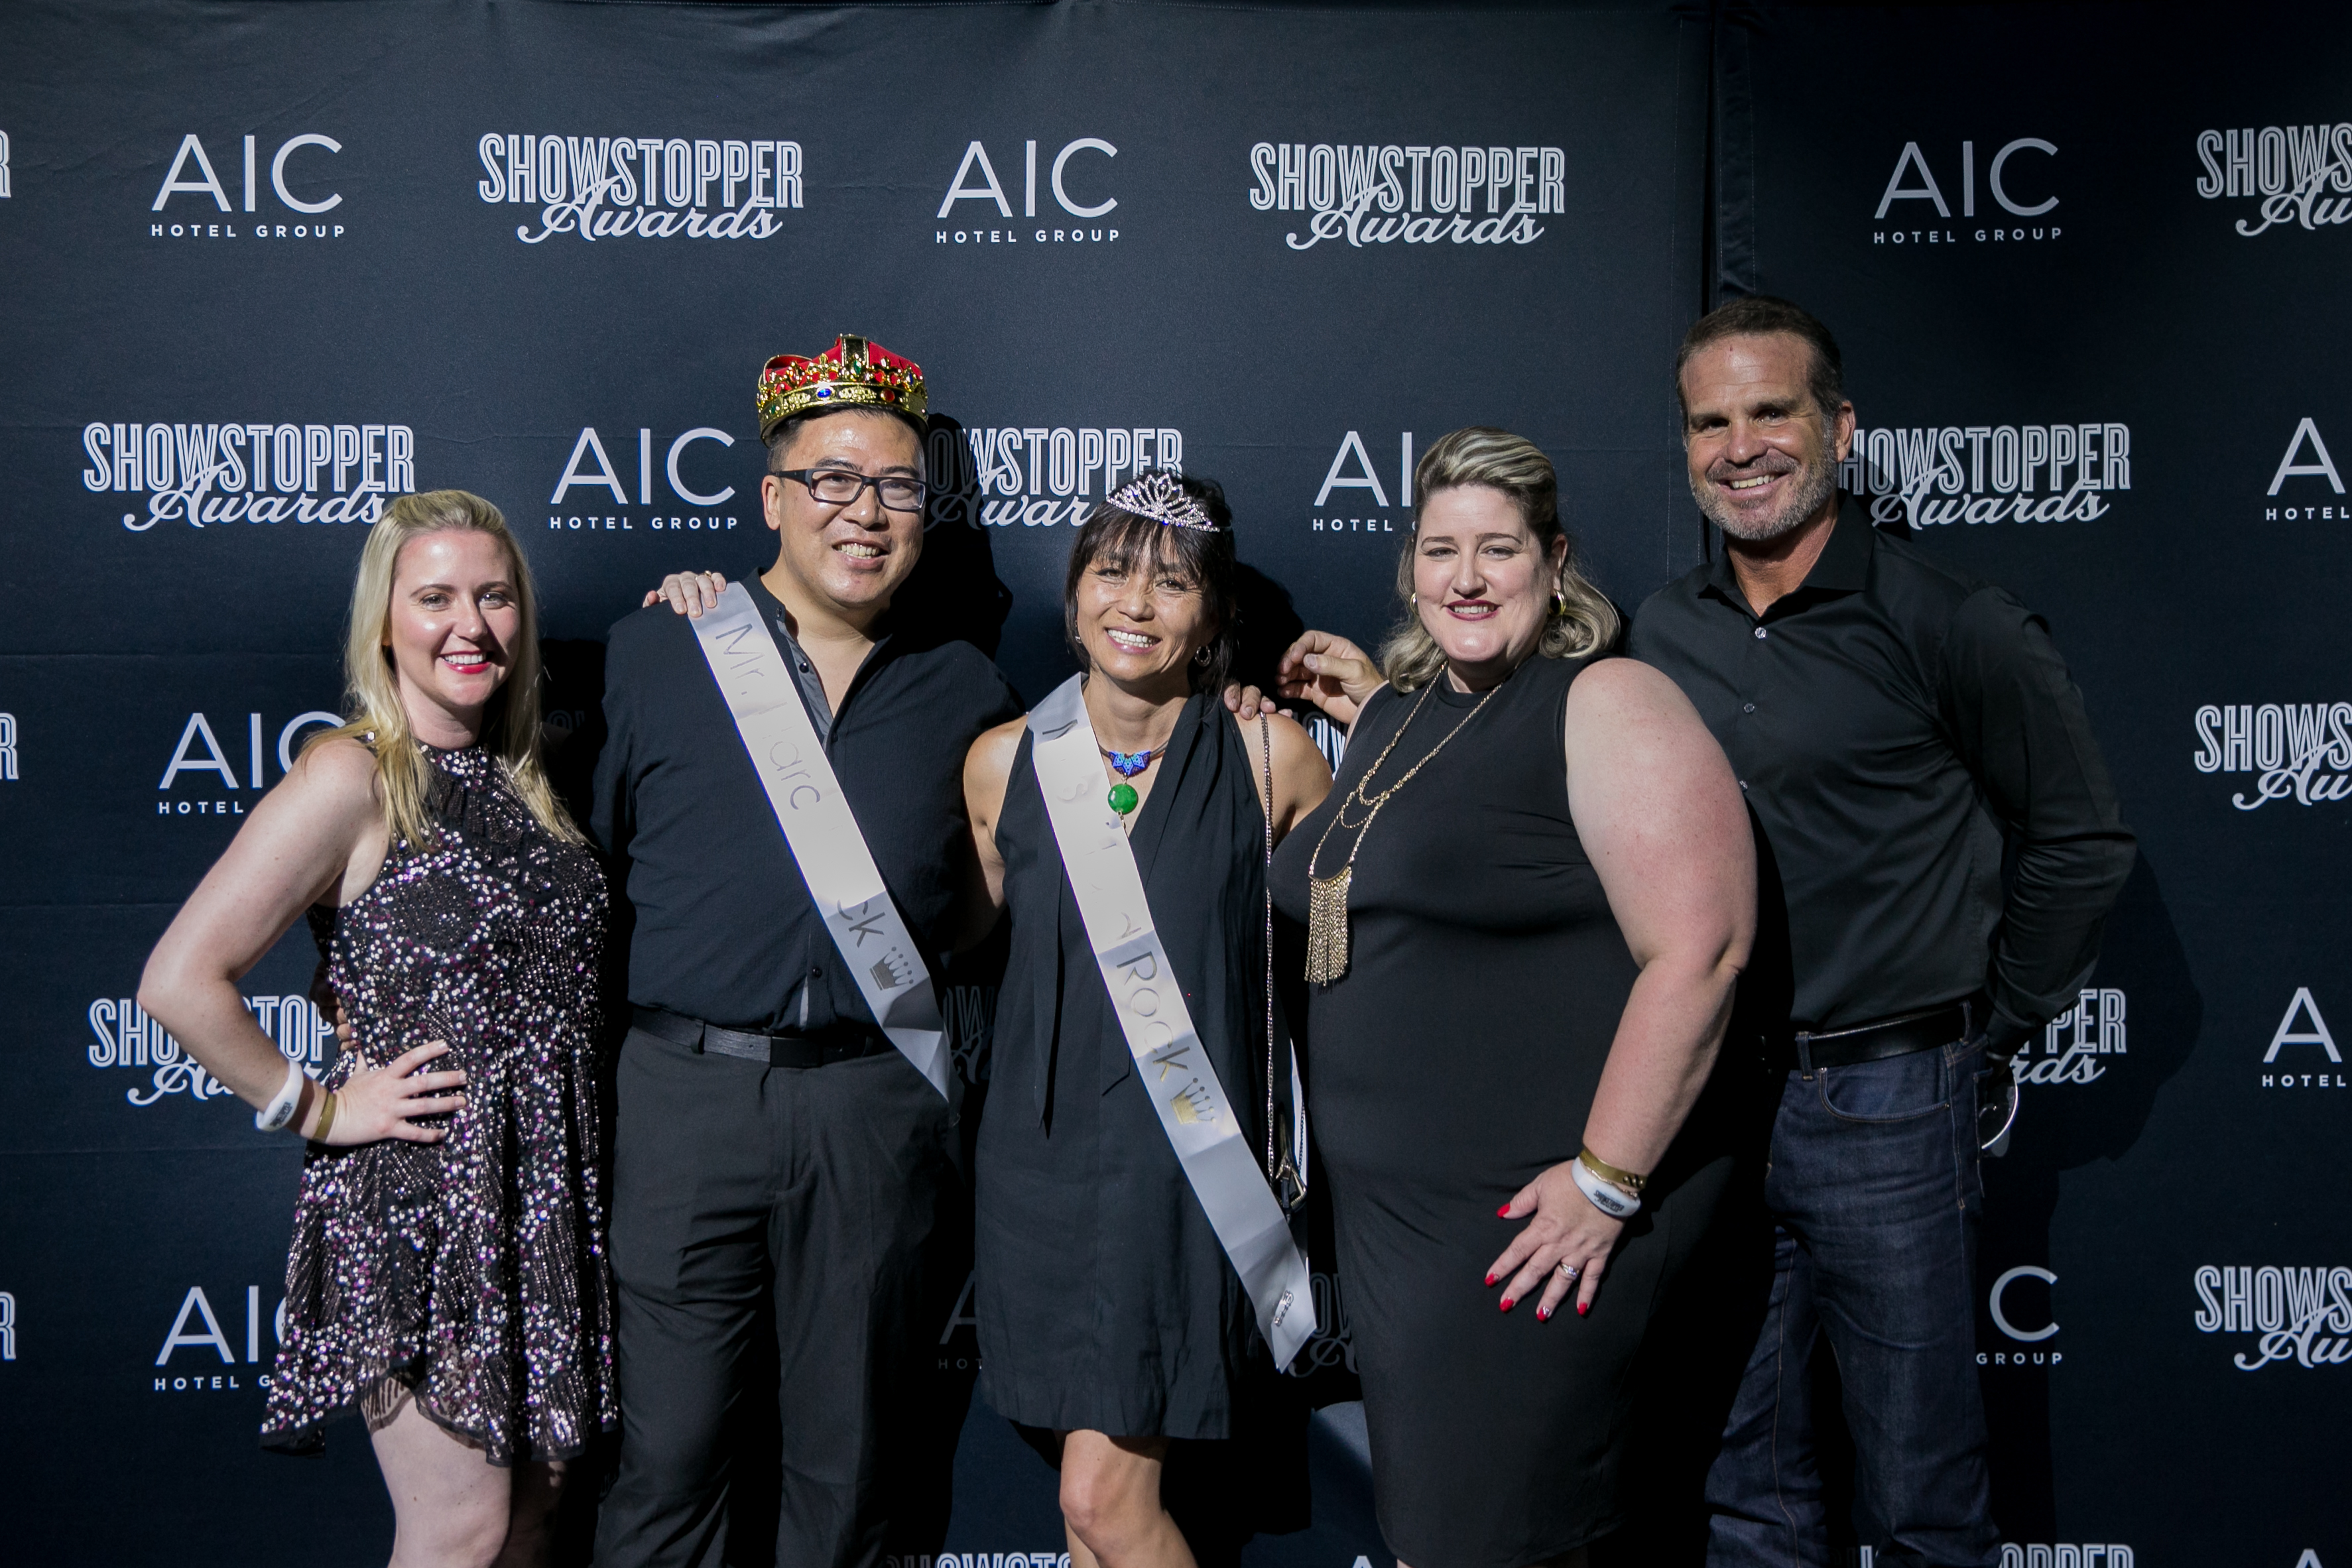 PAX - AIC's Showstopper Awards recognize 170+ in Punta Cana